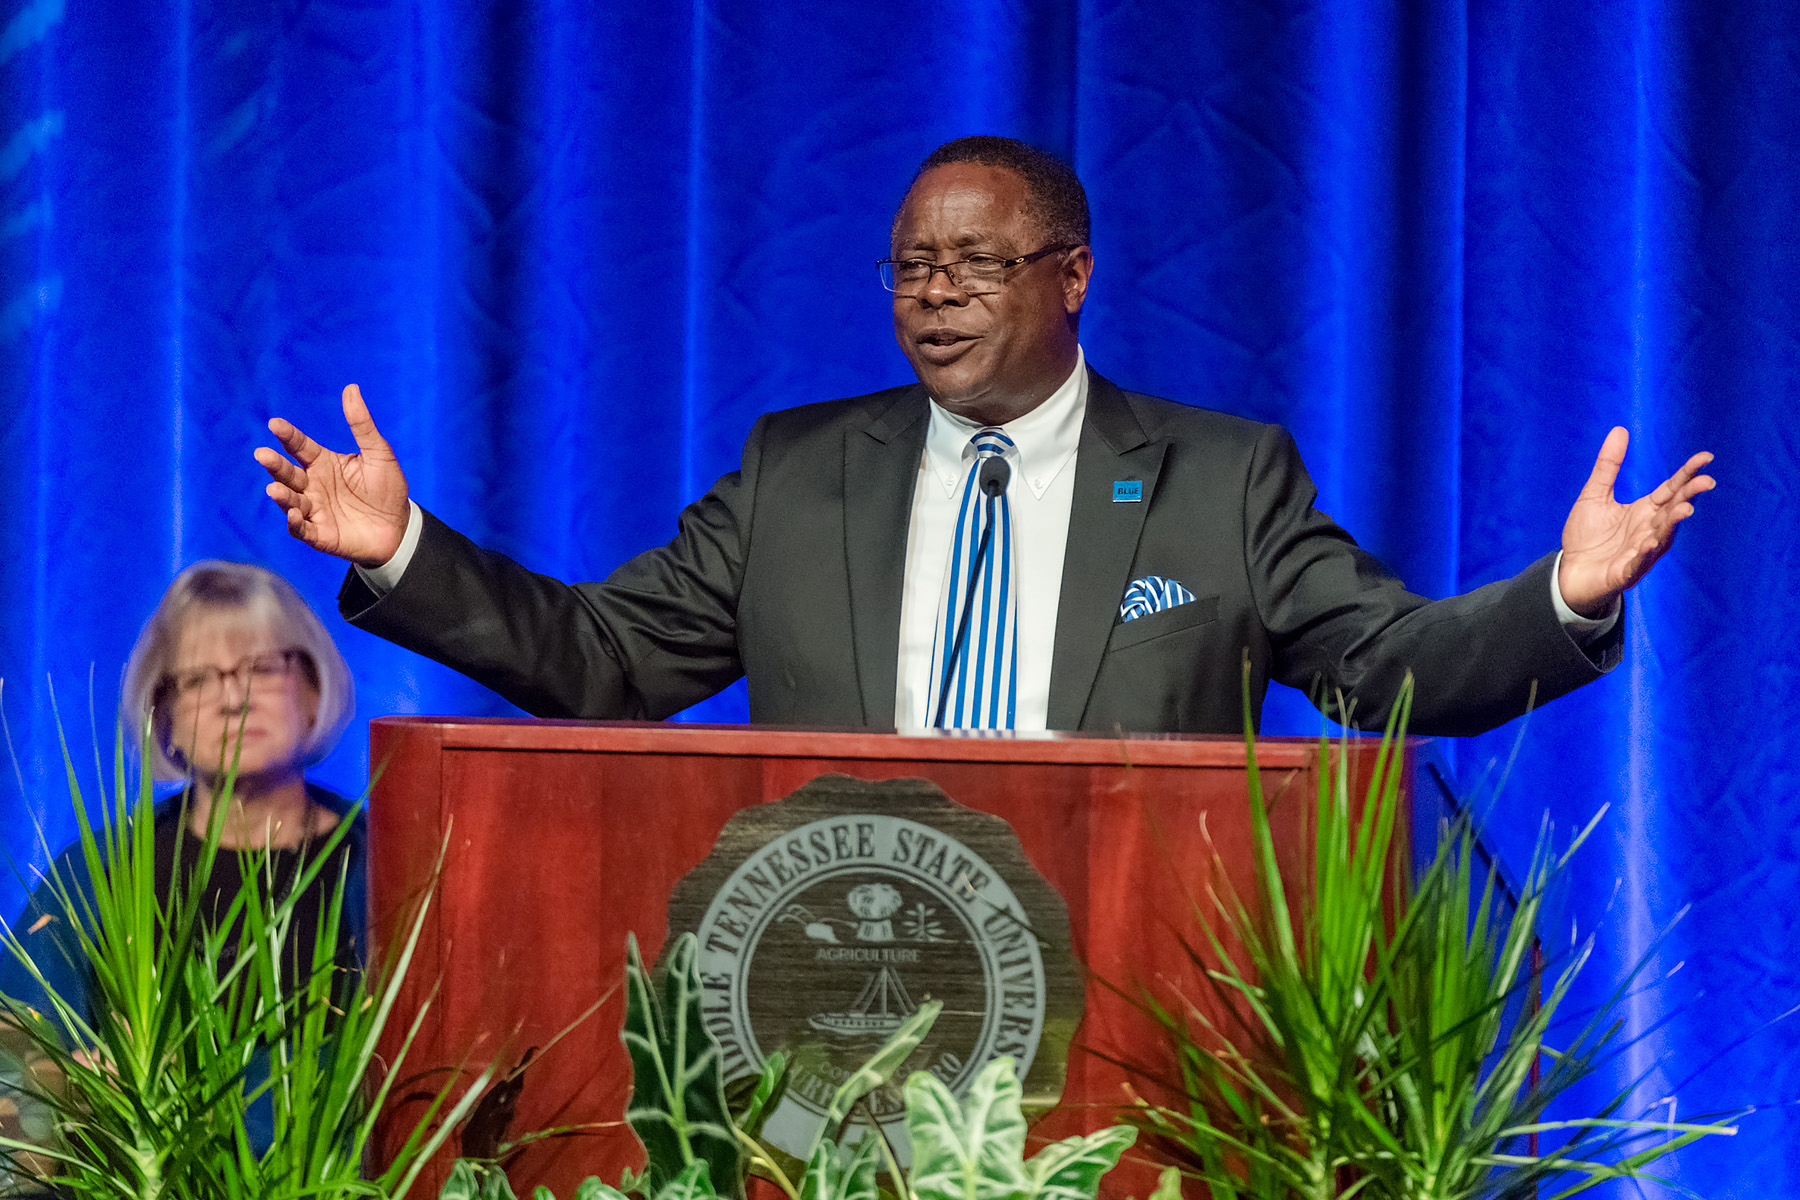 MTSU proud of its long service to low-income students, McPhee says